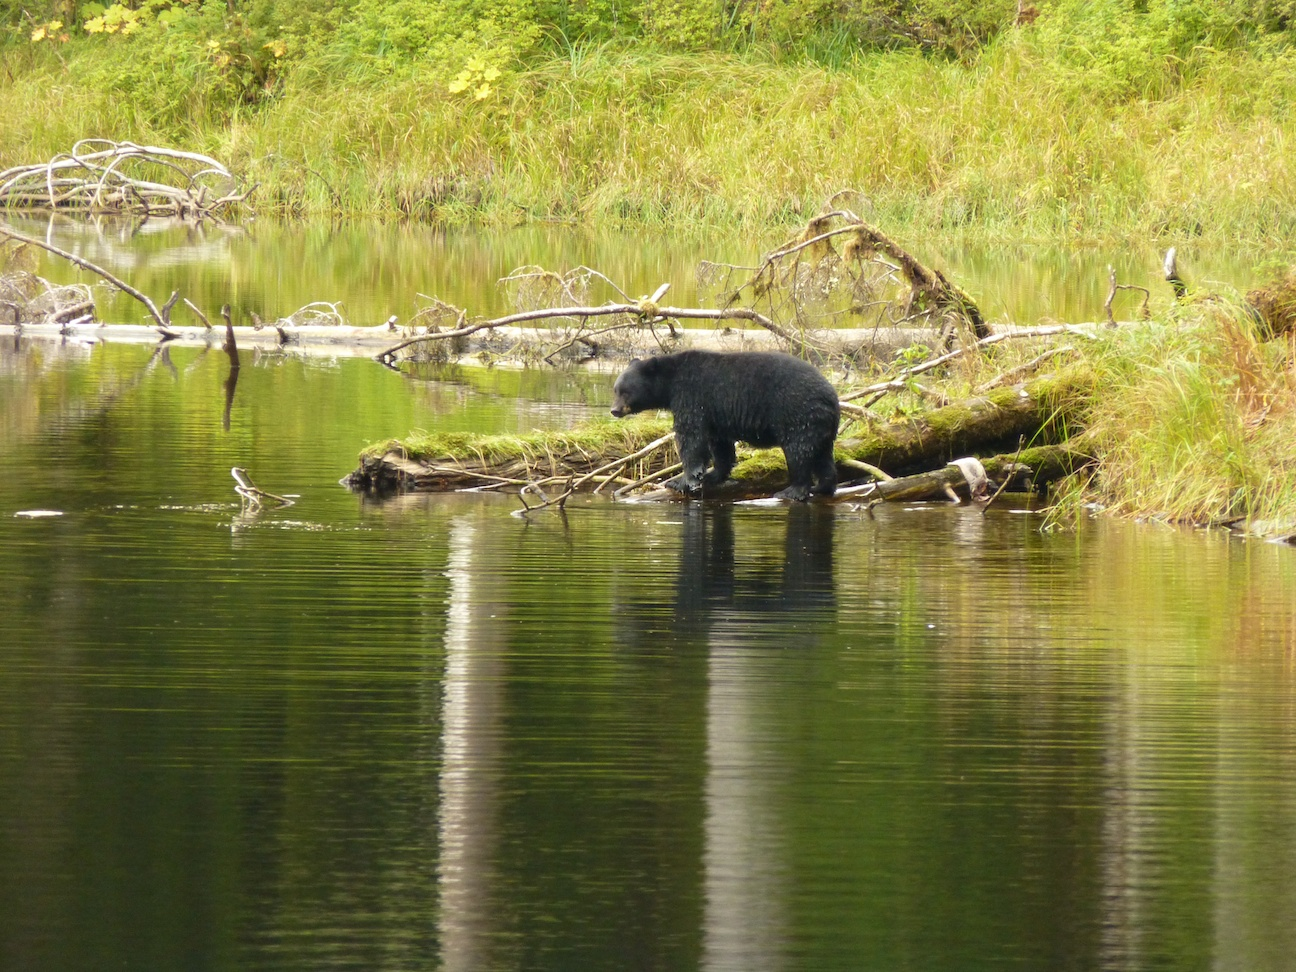 Bears viewing tours are available in many ports on the Alaska Cruise.